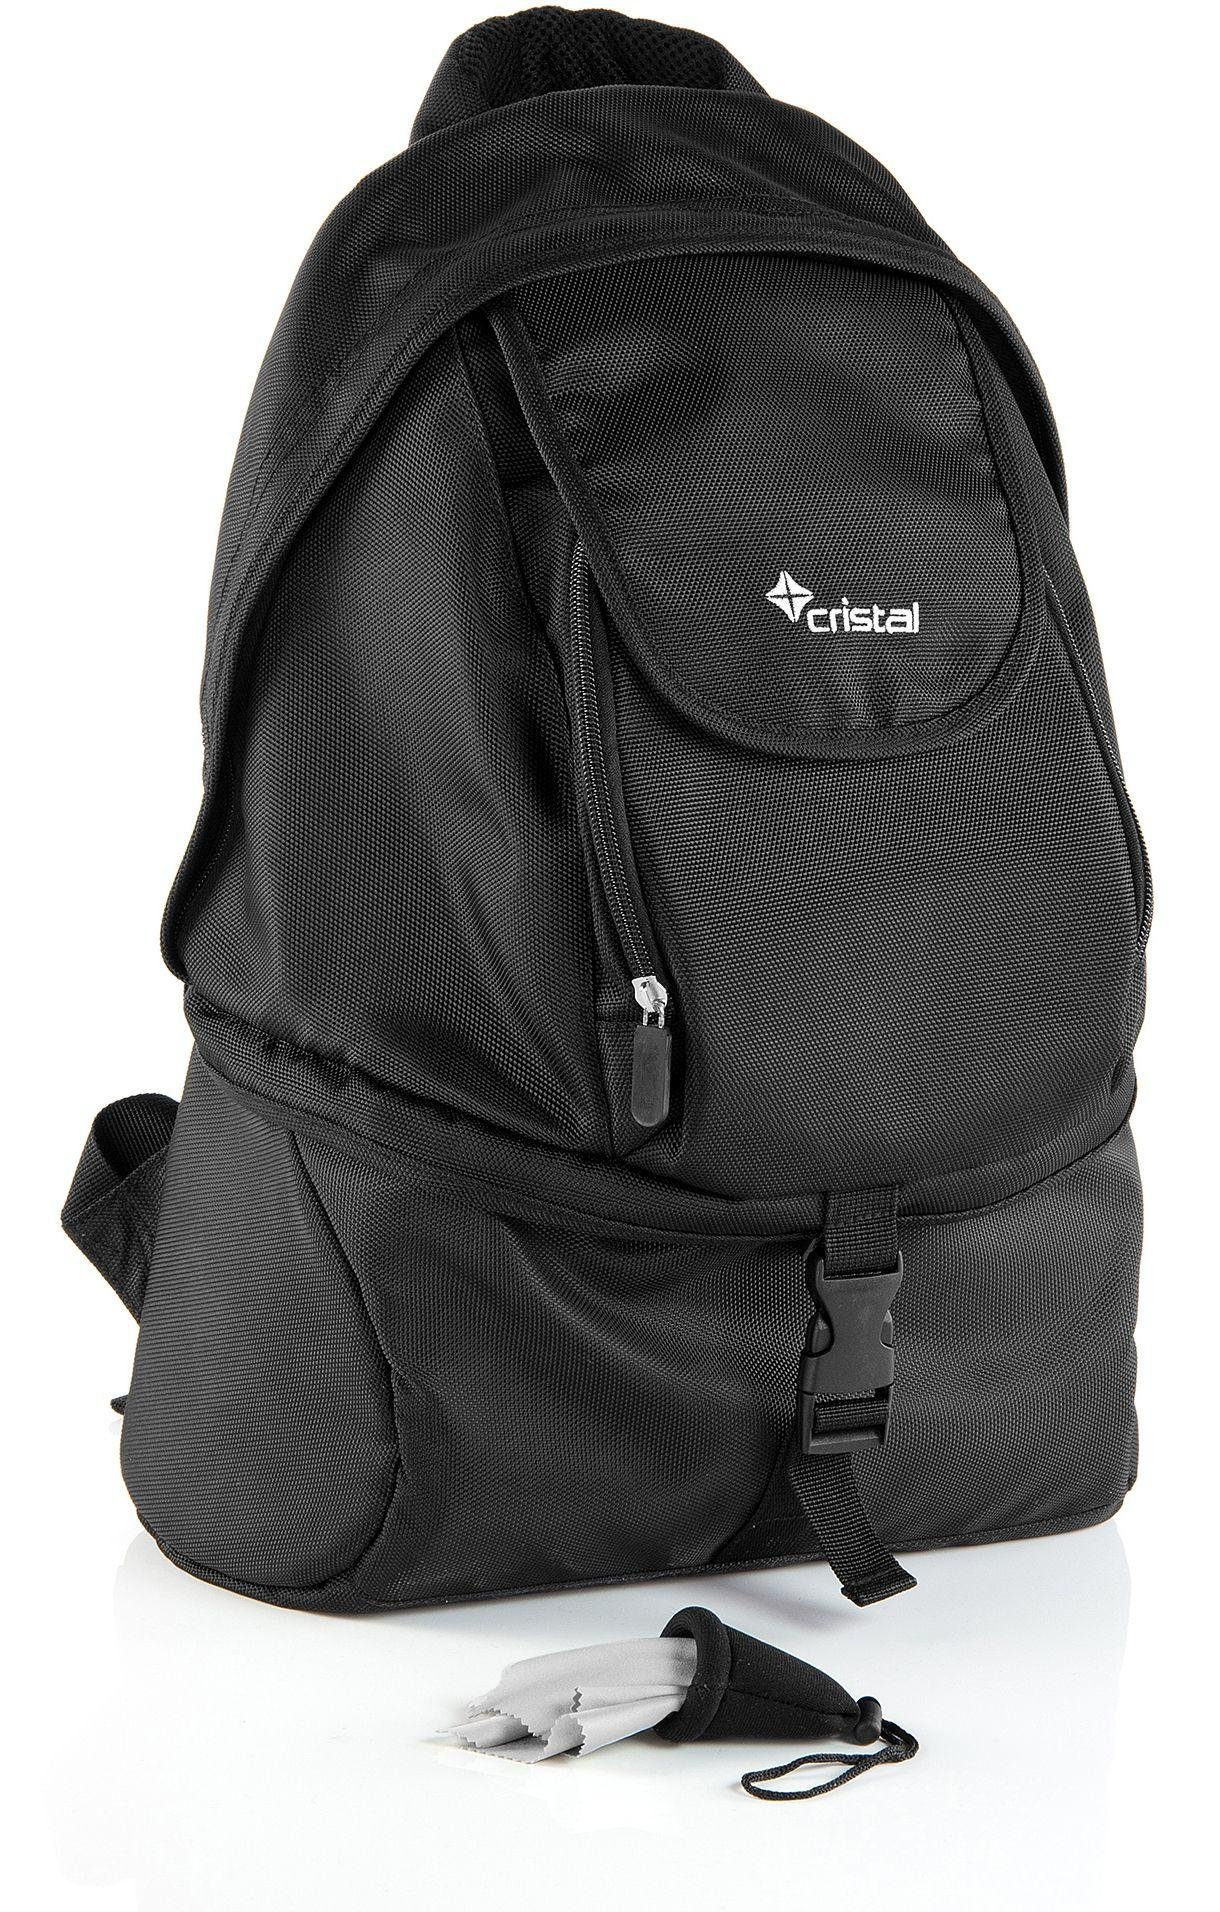 Cristal Cristal - DSLR - Camera Rucksack Bundle - Black